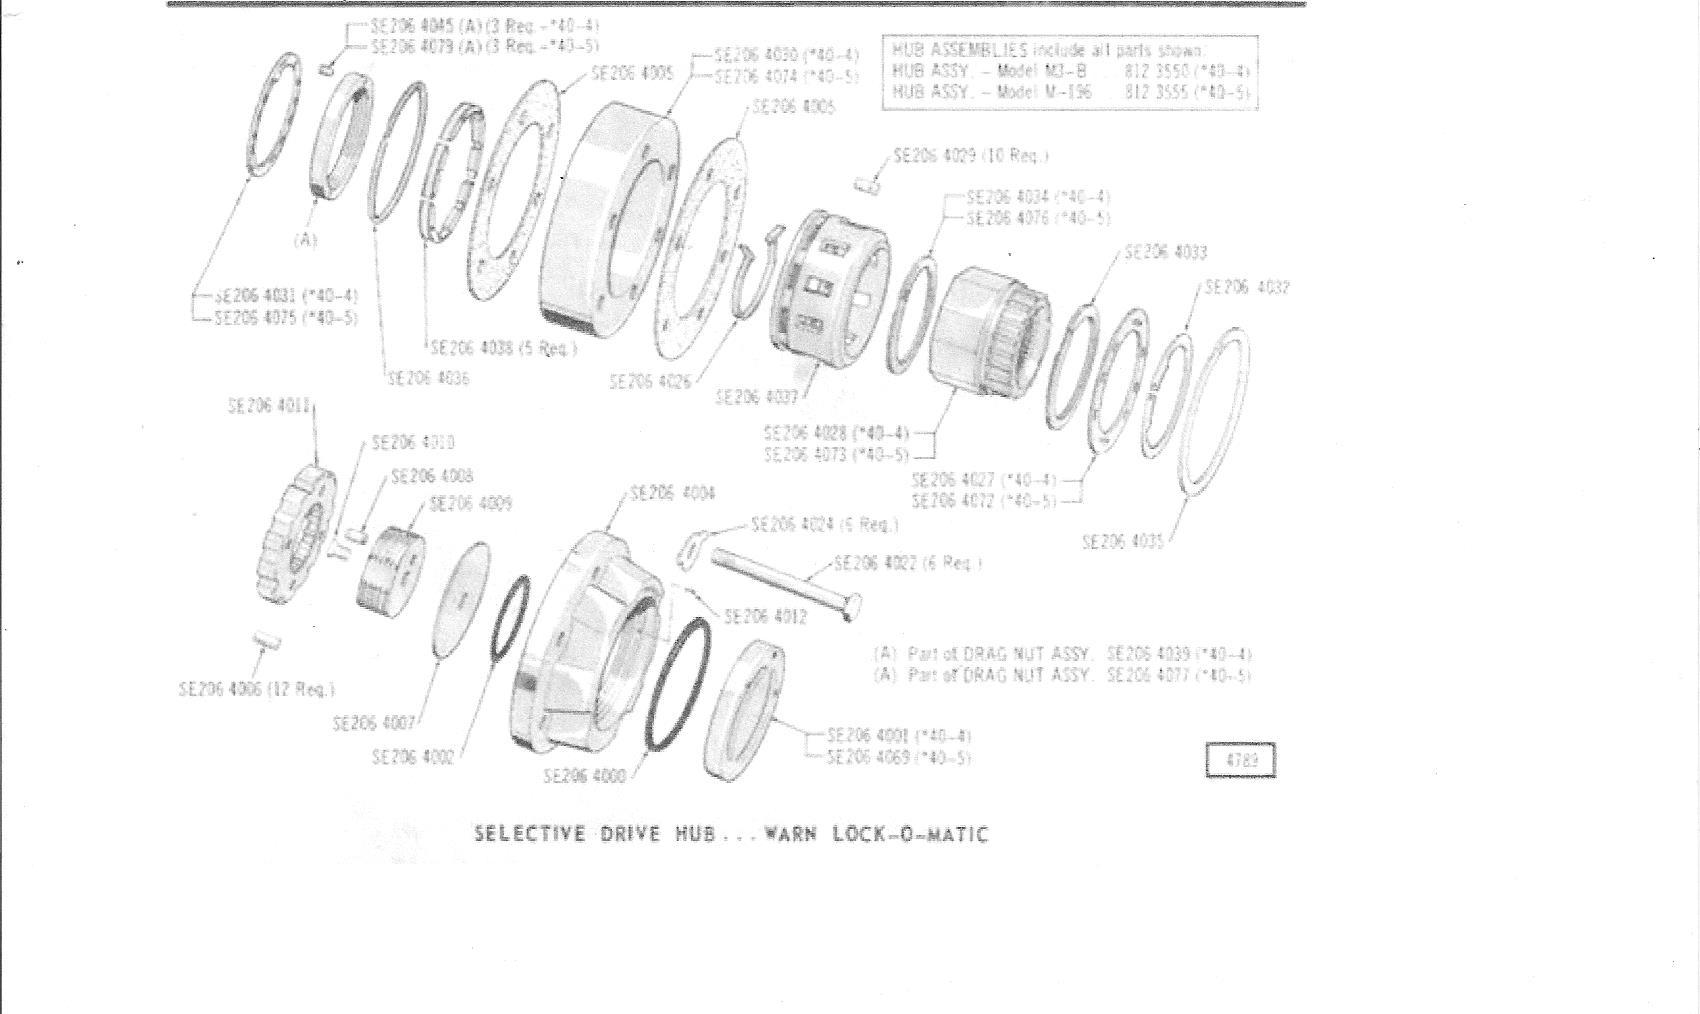 schematics and parts lists herm the overdrive guy Dana 44 Rear Axle Diagram warn lock o matic hub